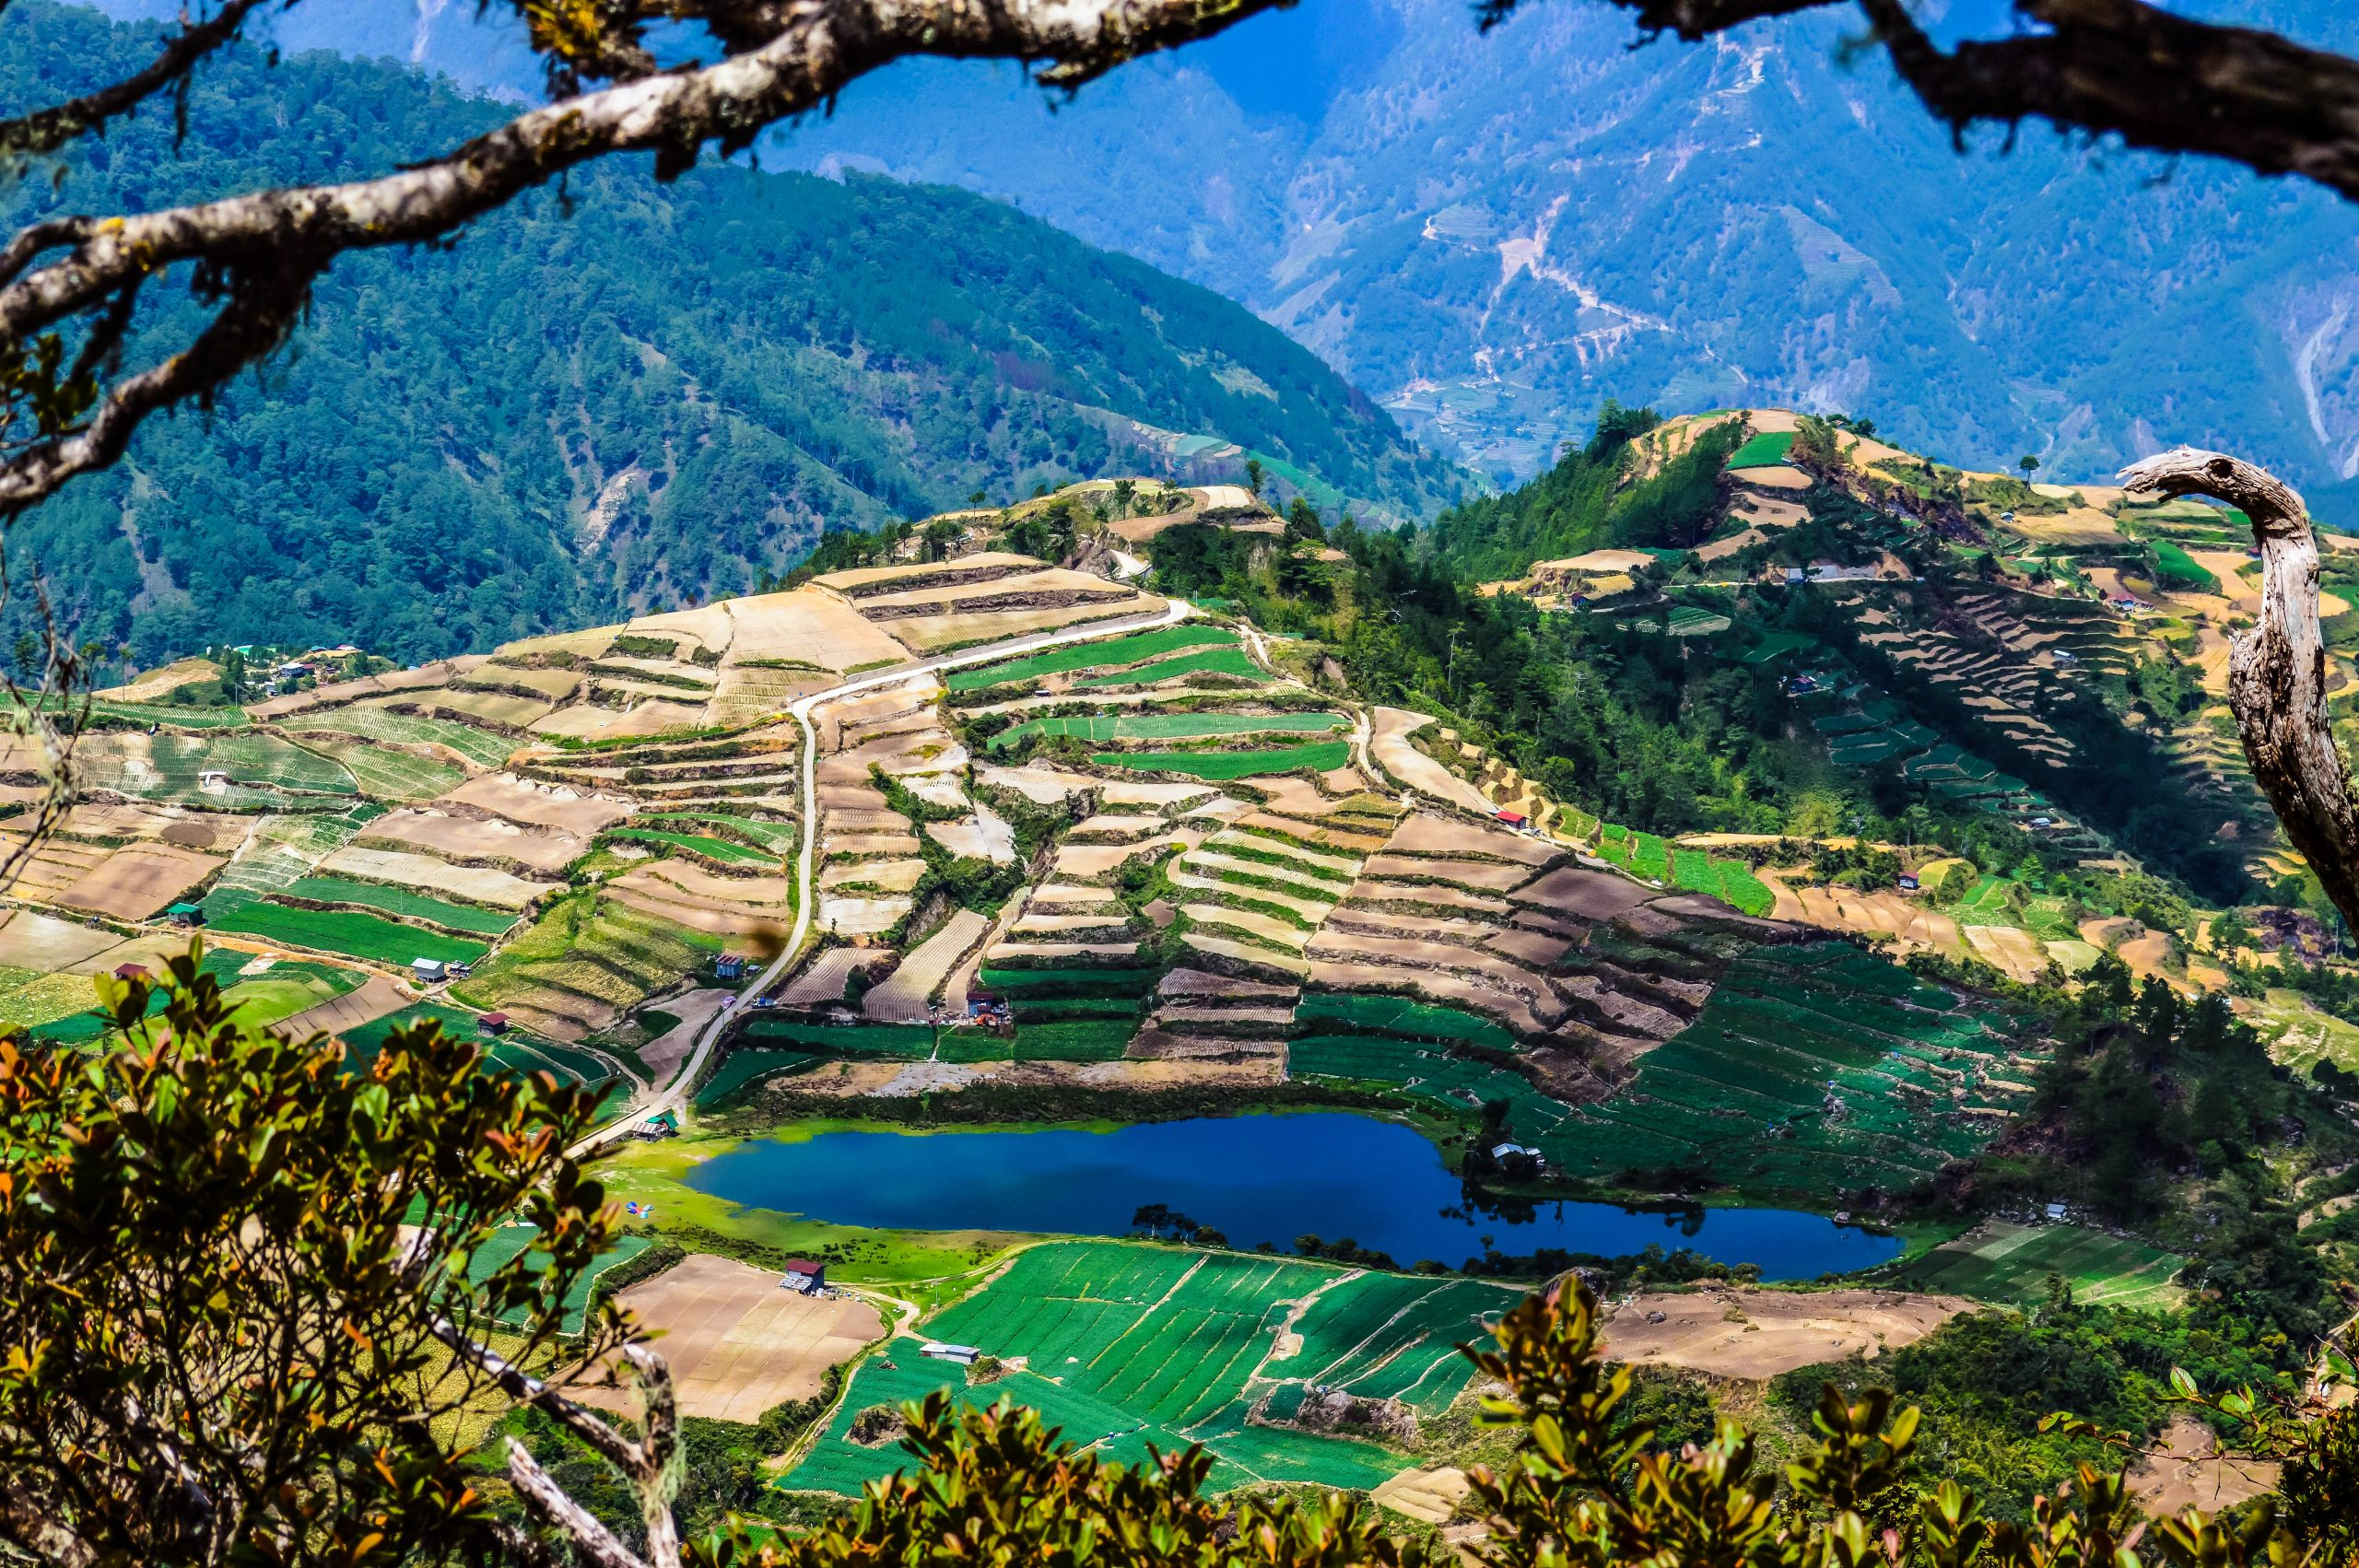 A bird's eyeview of a lake on top of a high mountain, surrounded by farms, gardens, and terraces